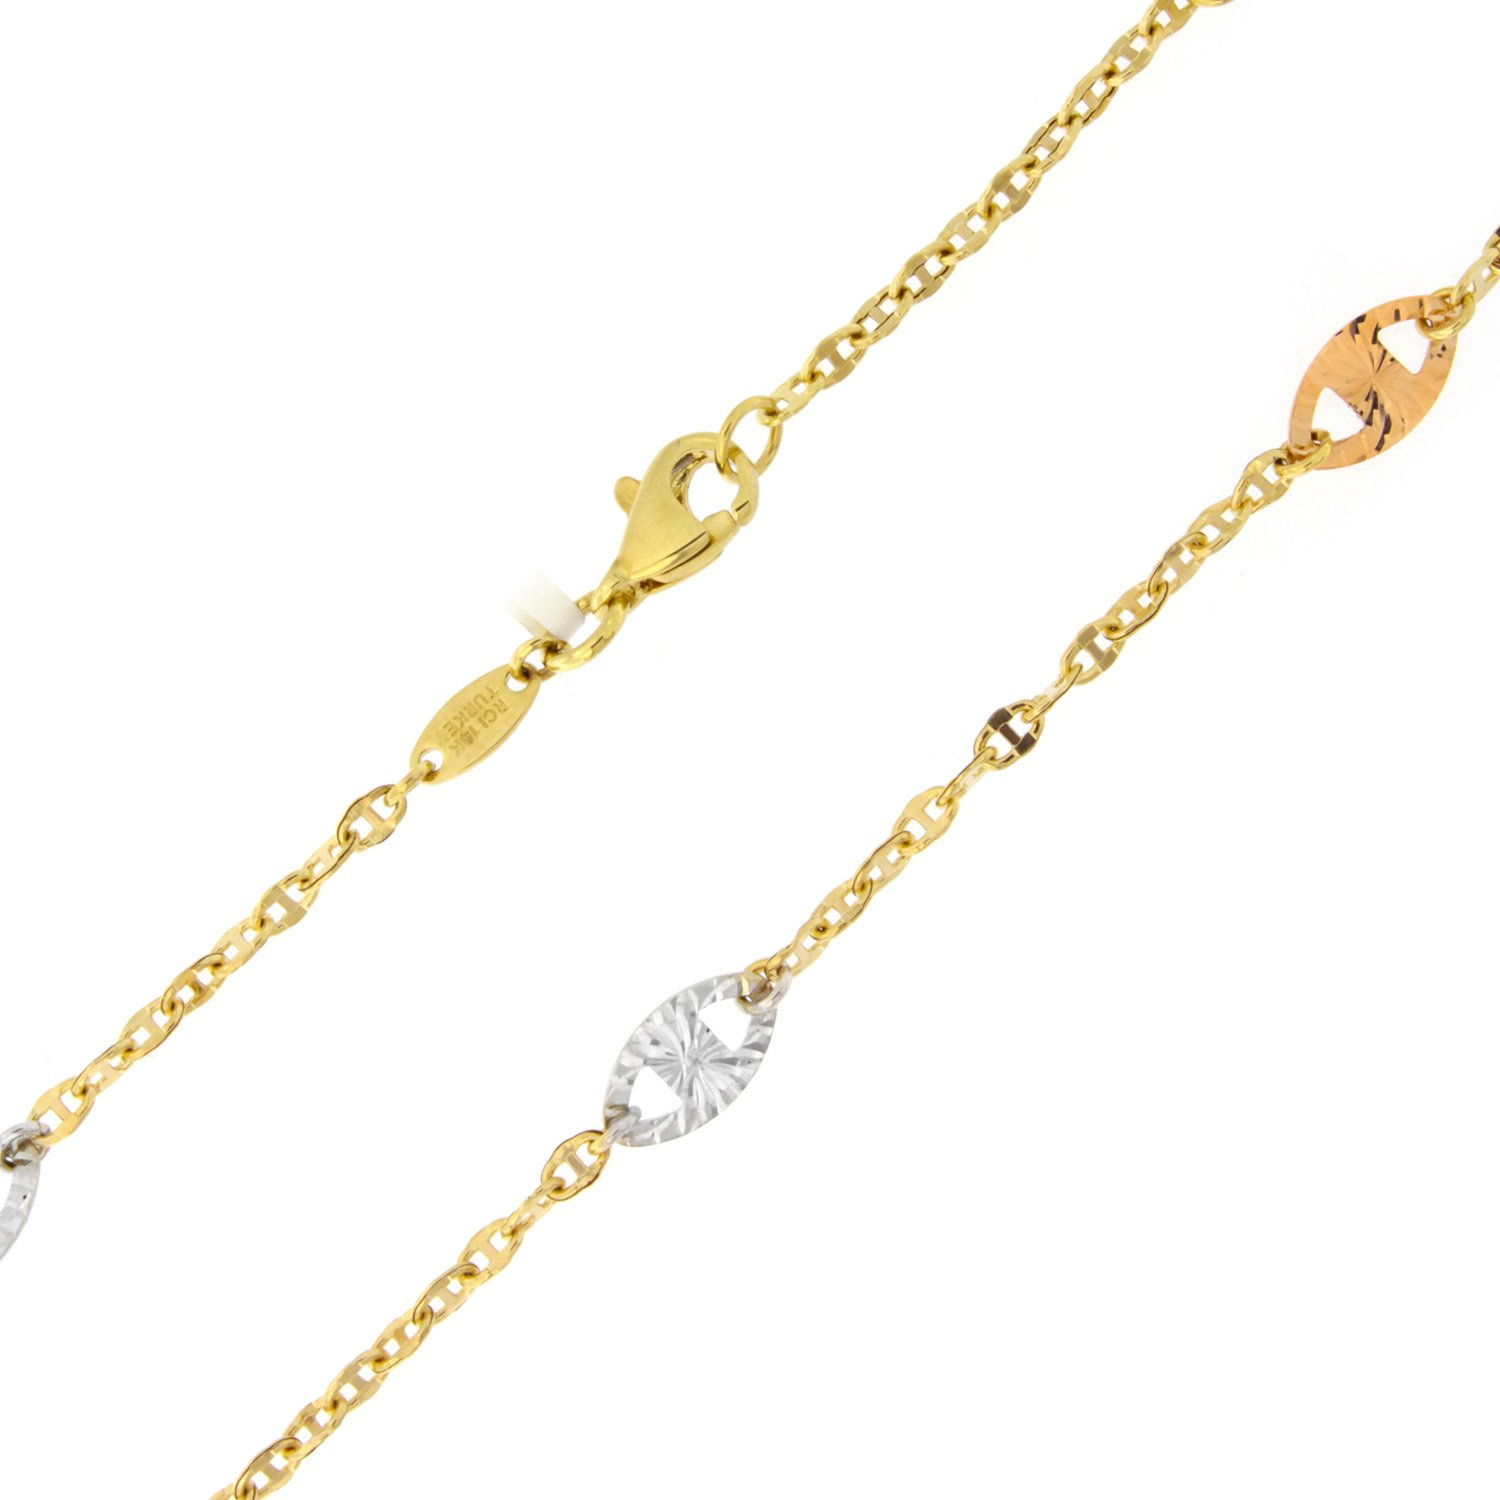 14k Yellow, White and Rose Gold Tri-Color Diamond-Cut Mariner Link Adjustable Anklet - 9'' - 10''